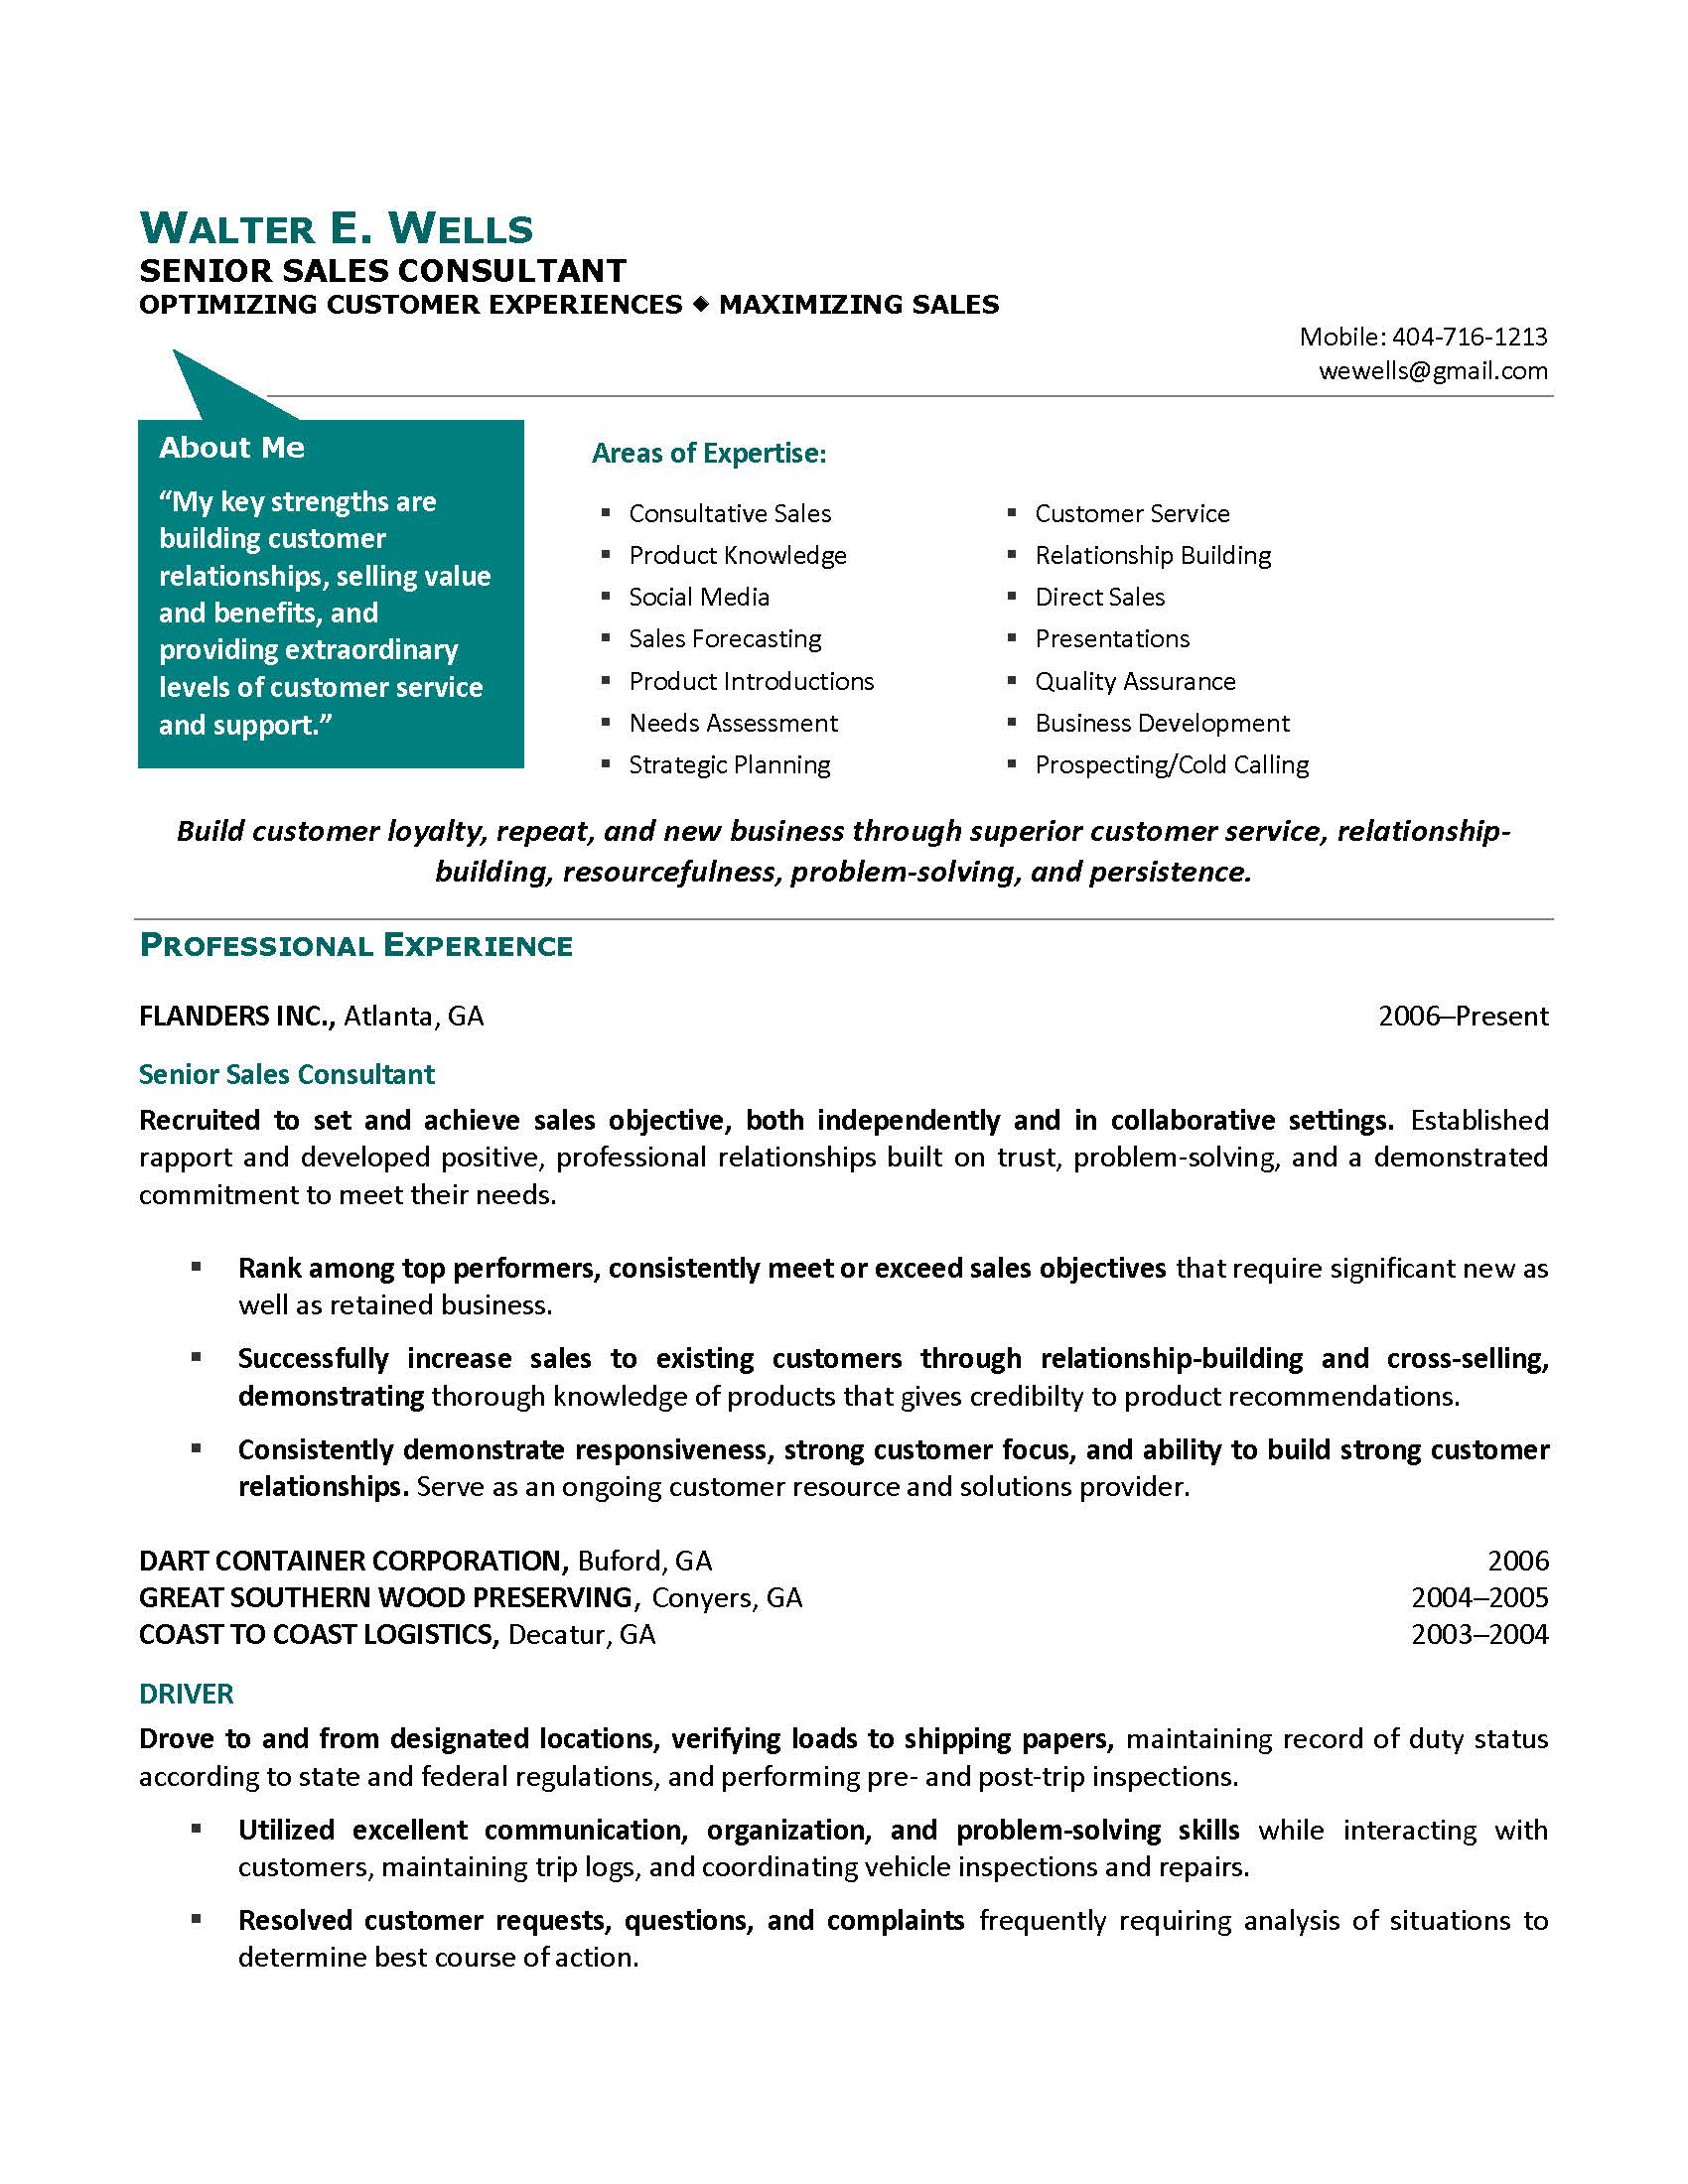 senior sales consultant resume sample provided by elite resume writing services. Resume Example. Resume CV Cover Letter